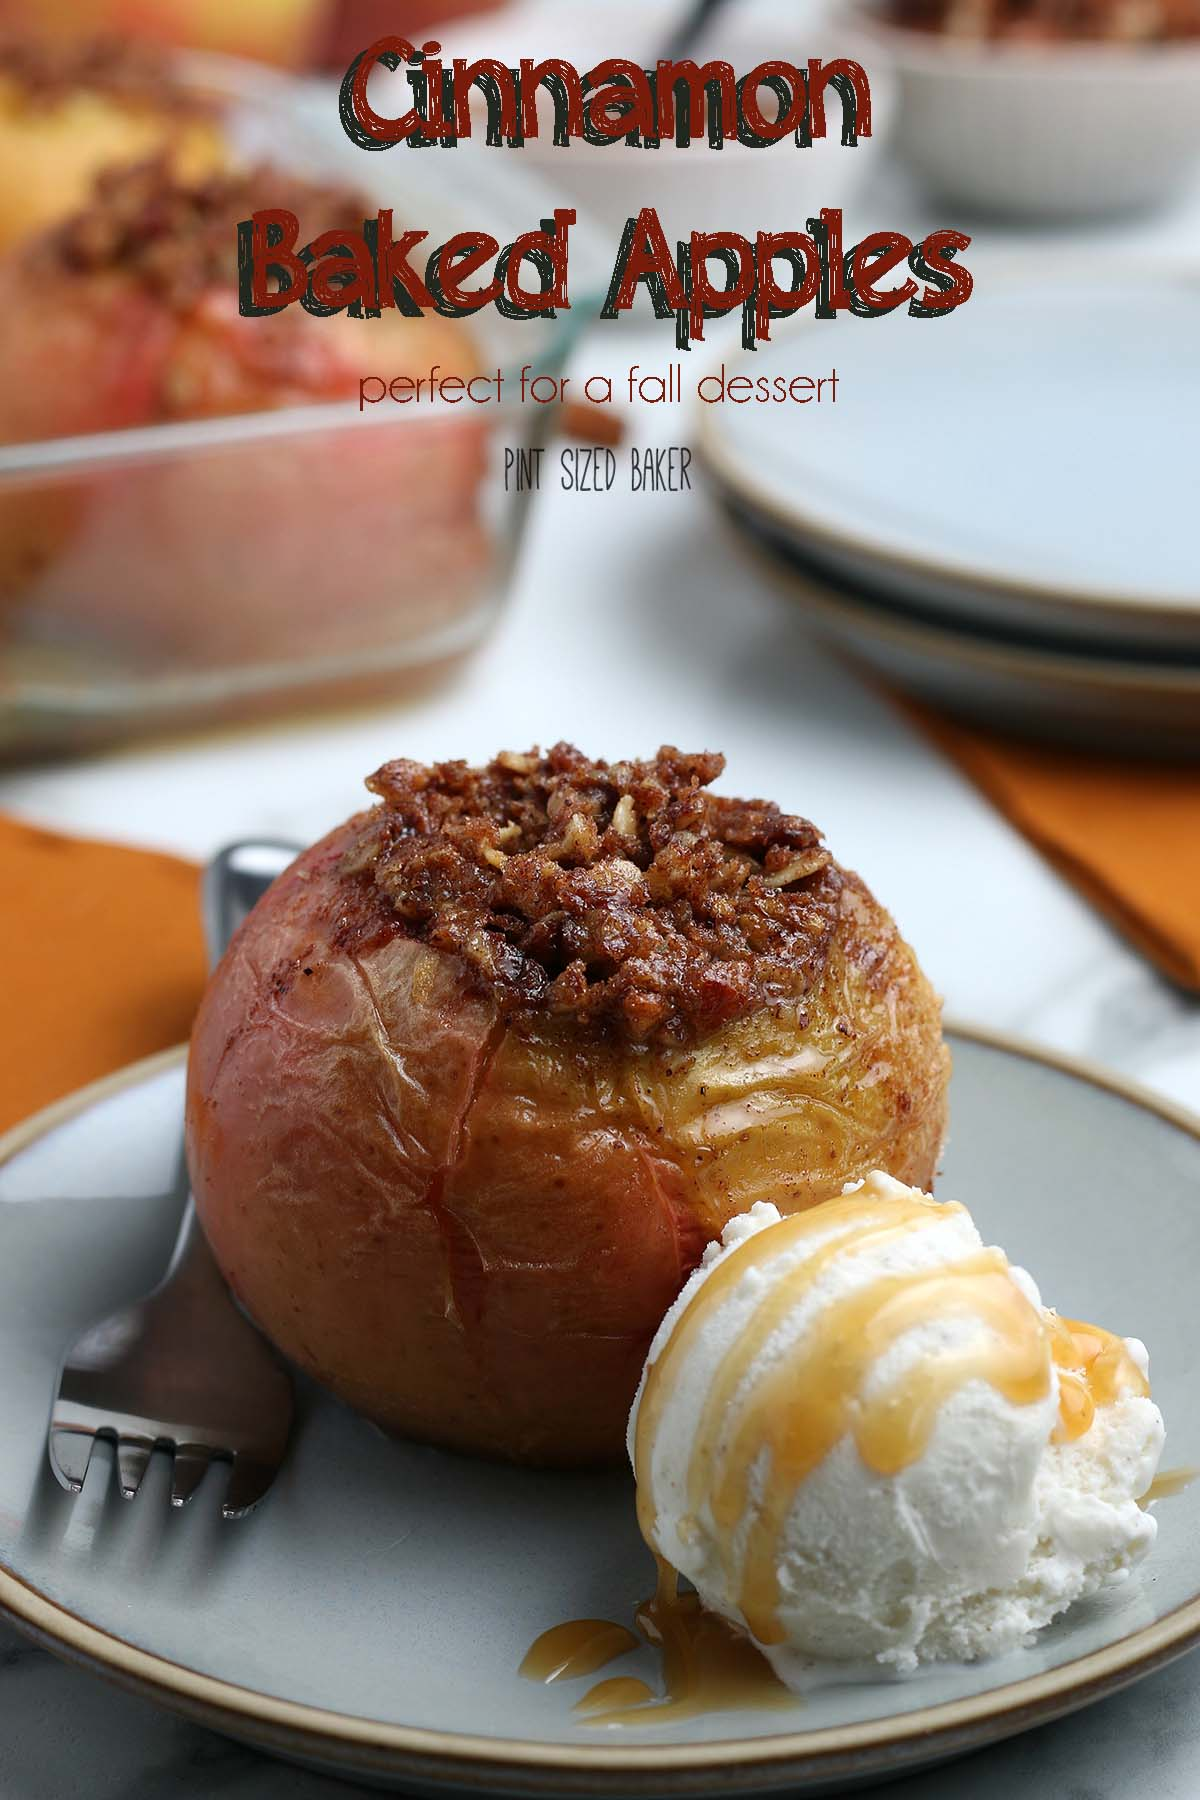 Warm up on a fall night with these easy cinnamon baked apples. Serve them up with a scoop of ice cream drizzled with caramel sauce for dessert.